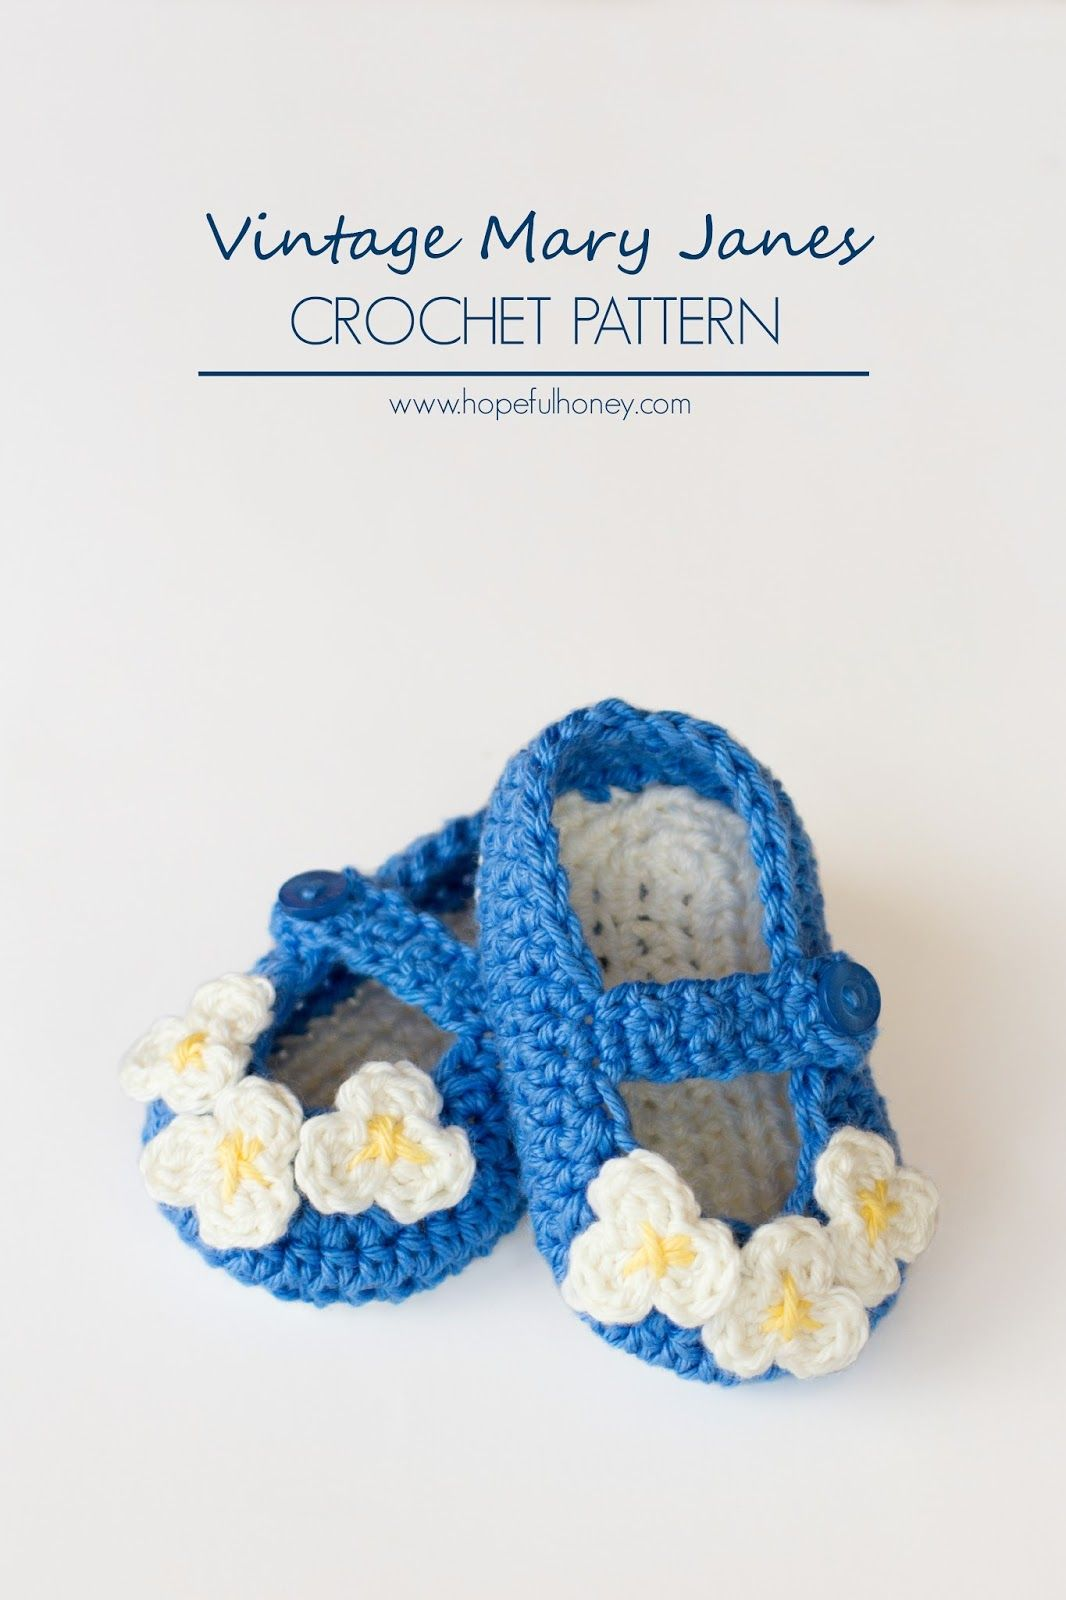 Vintage Mary Jane Baby Booties Crochet Pattern | Zapatos, Tejido y Bebe